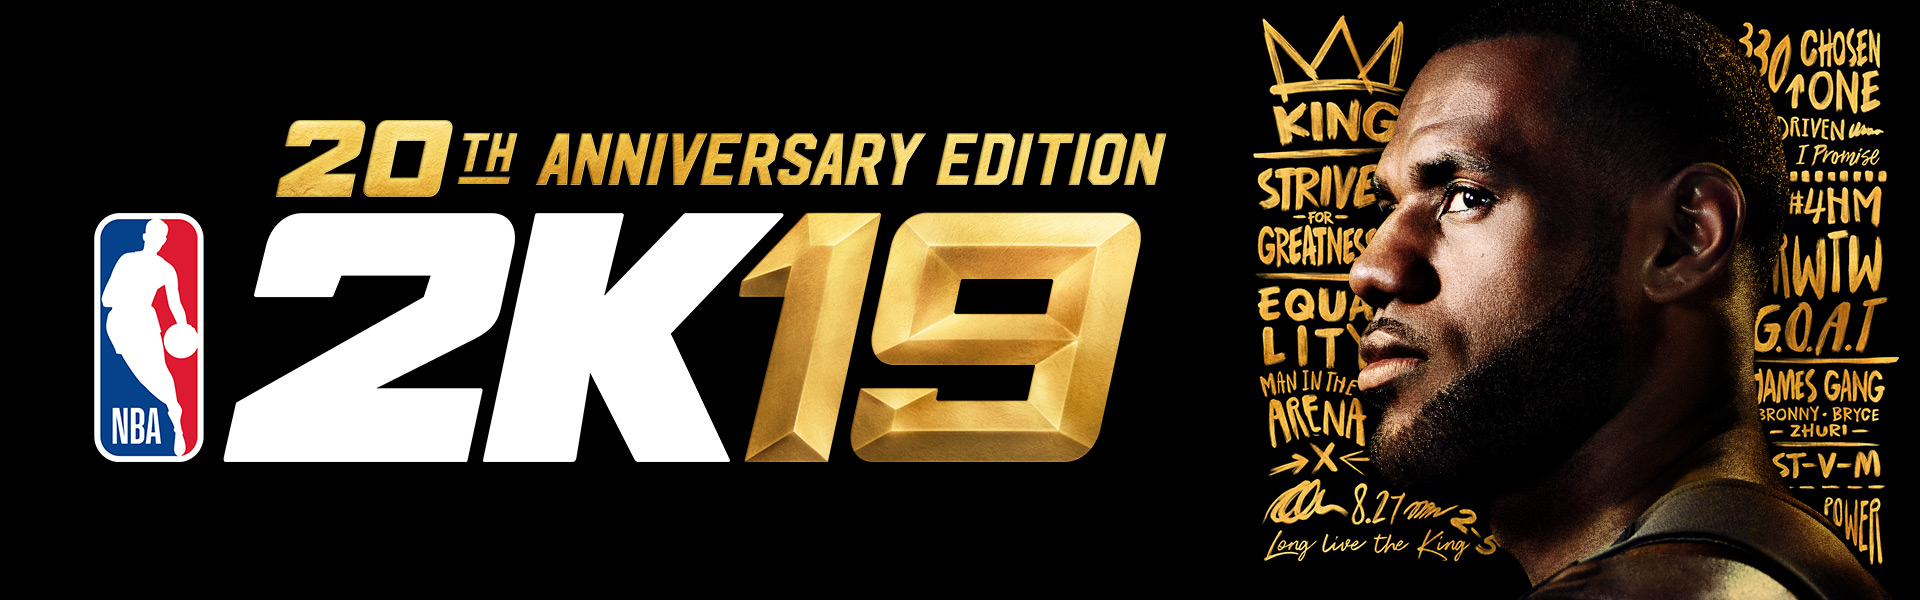 20th anniversary edition NBA 2K19, Profile view of LeBron James' face with decorative graffiti in the background